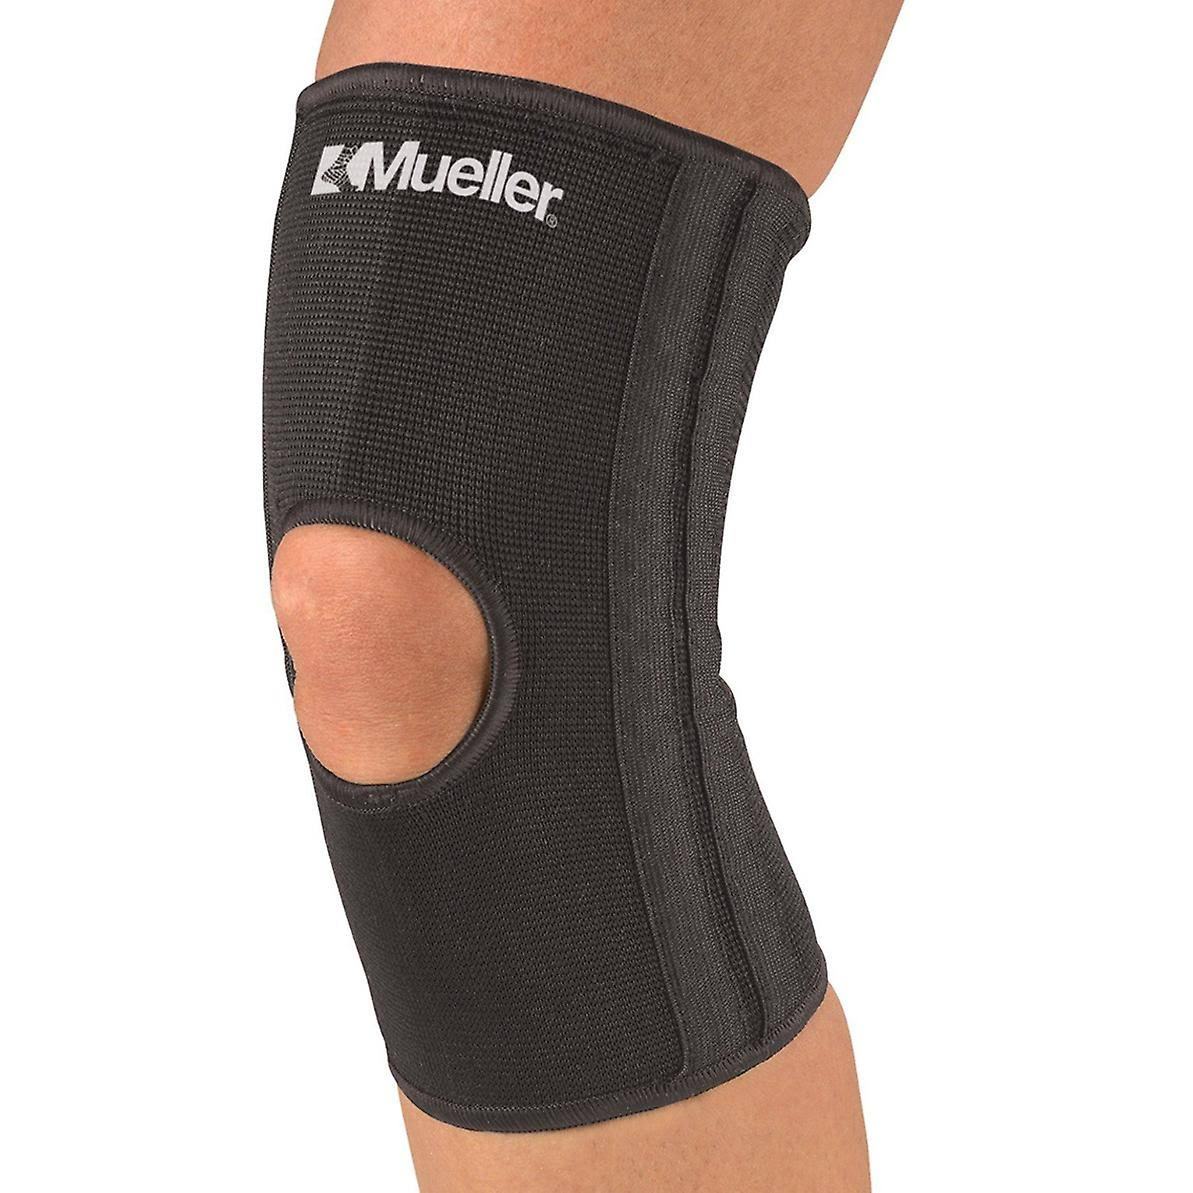 Mueller 427 Elastic Knee Stabiliser - Large to X-Large